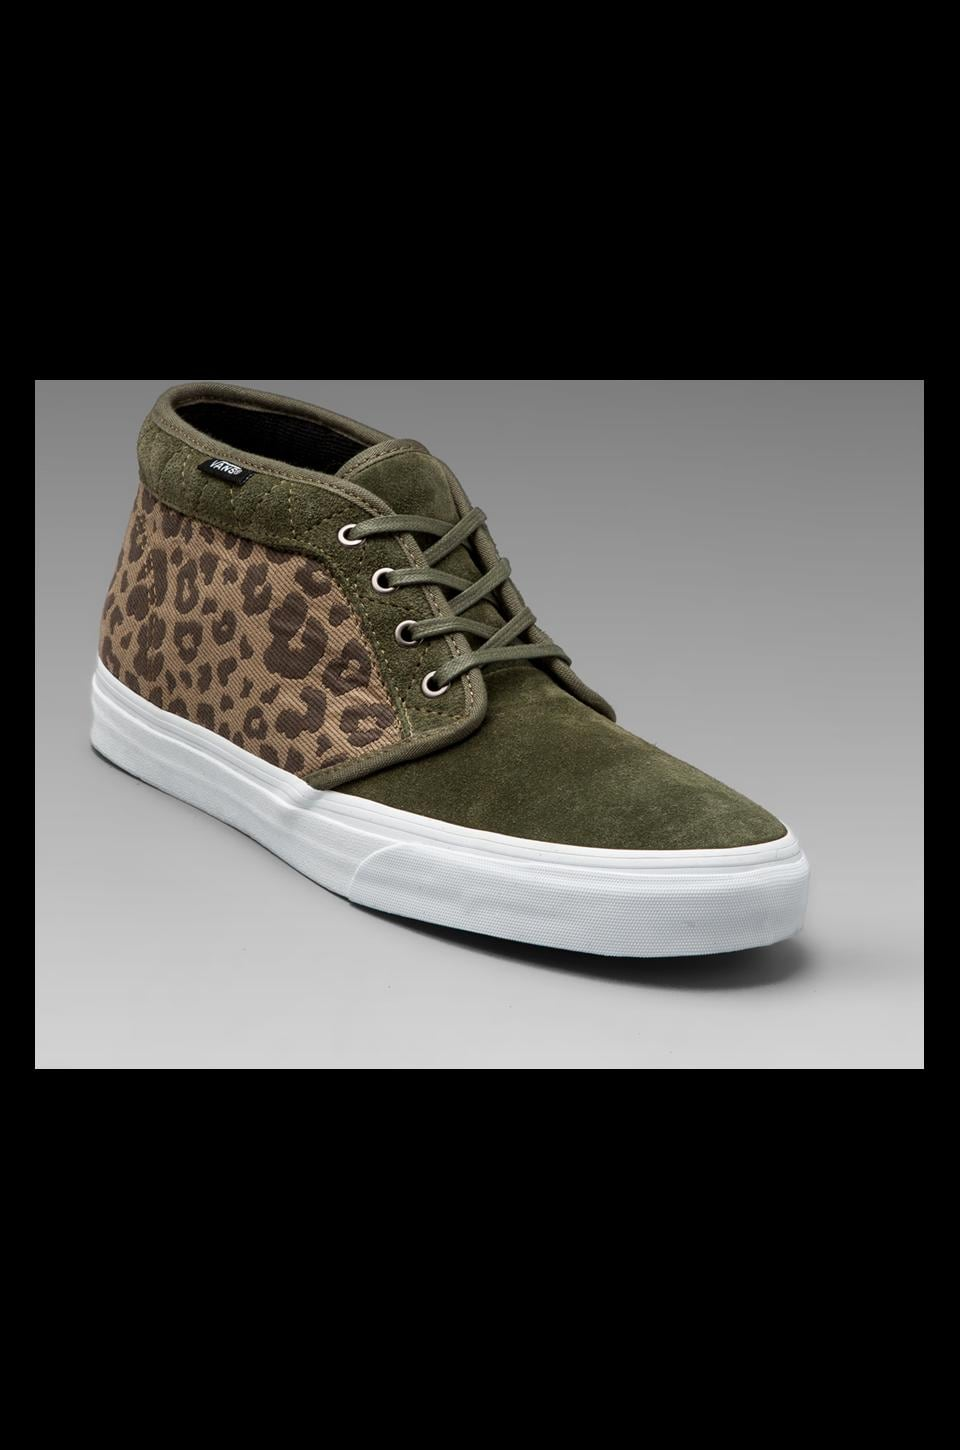 Vans California Chukka Boot Leopard Camo in Grape Leaf